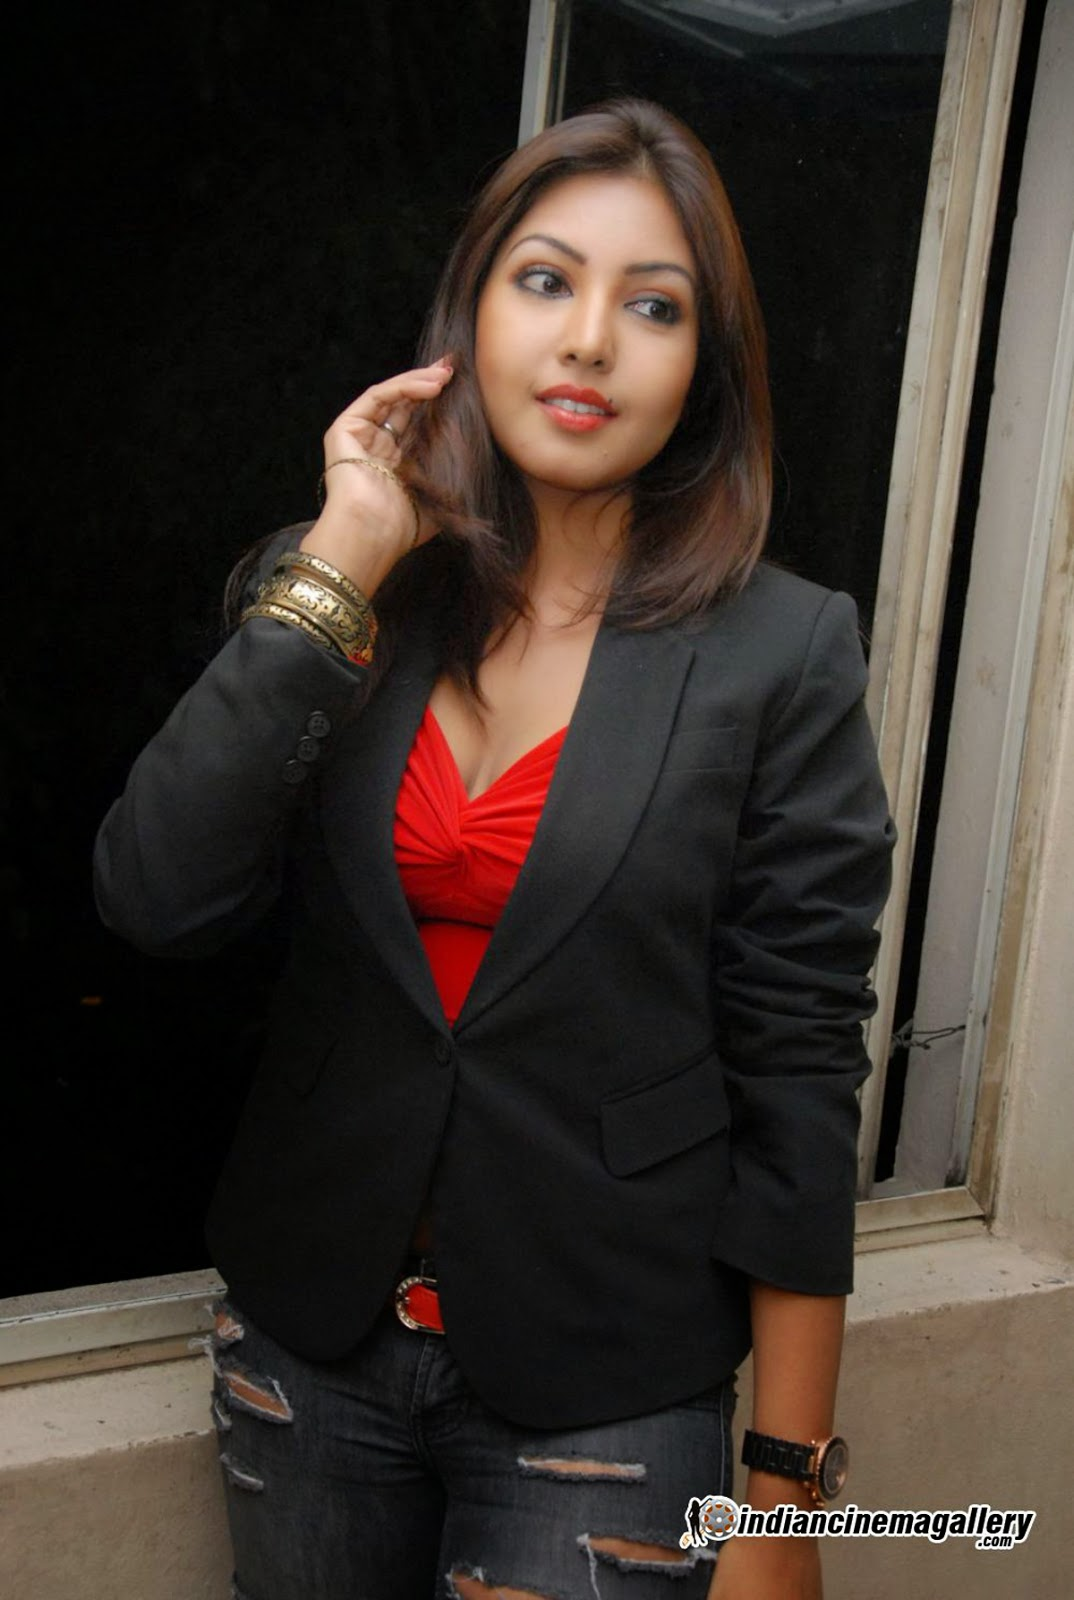 Komal Jha red top black jacket hot pics